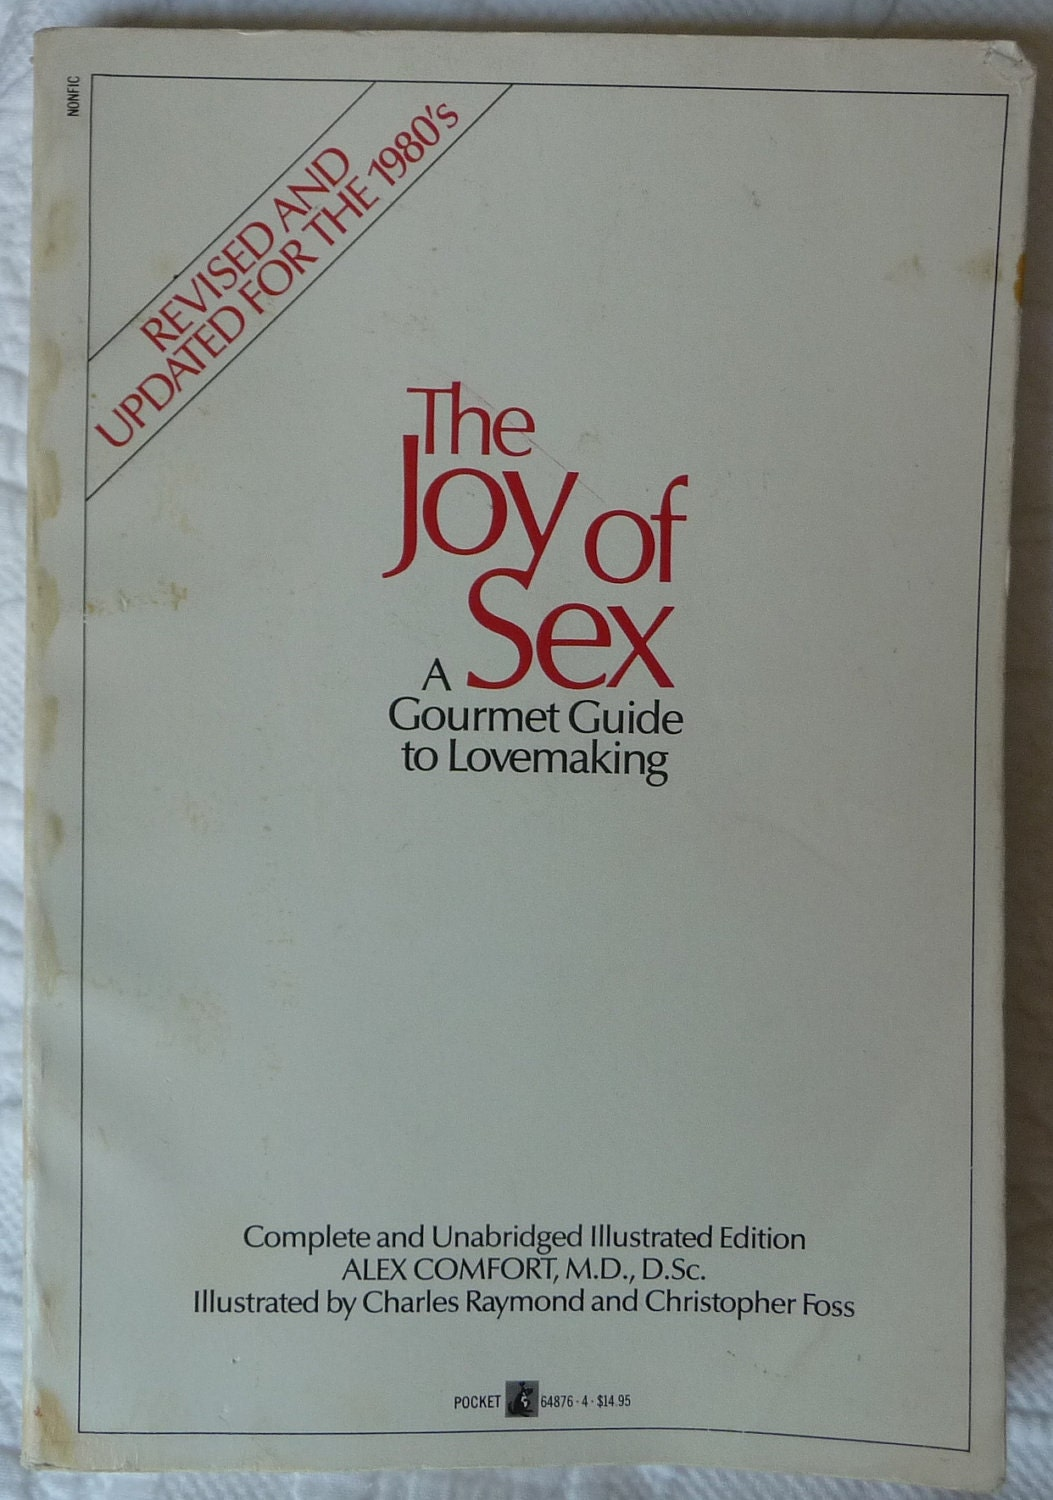 il fullxfull.309158357 MATURE BOOK   The Joy of Sex   A Gourmet Guide to Lovemaking   ILLUSTRATED